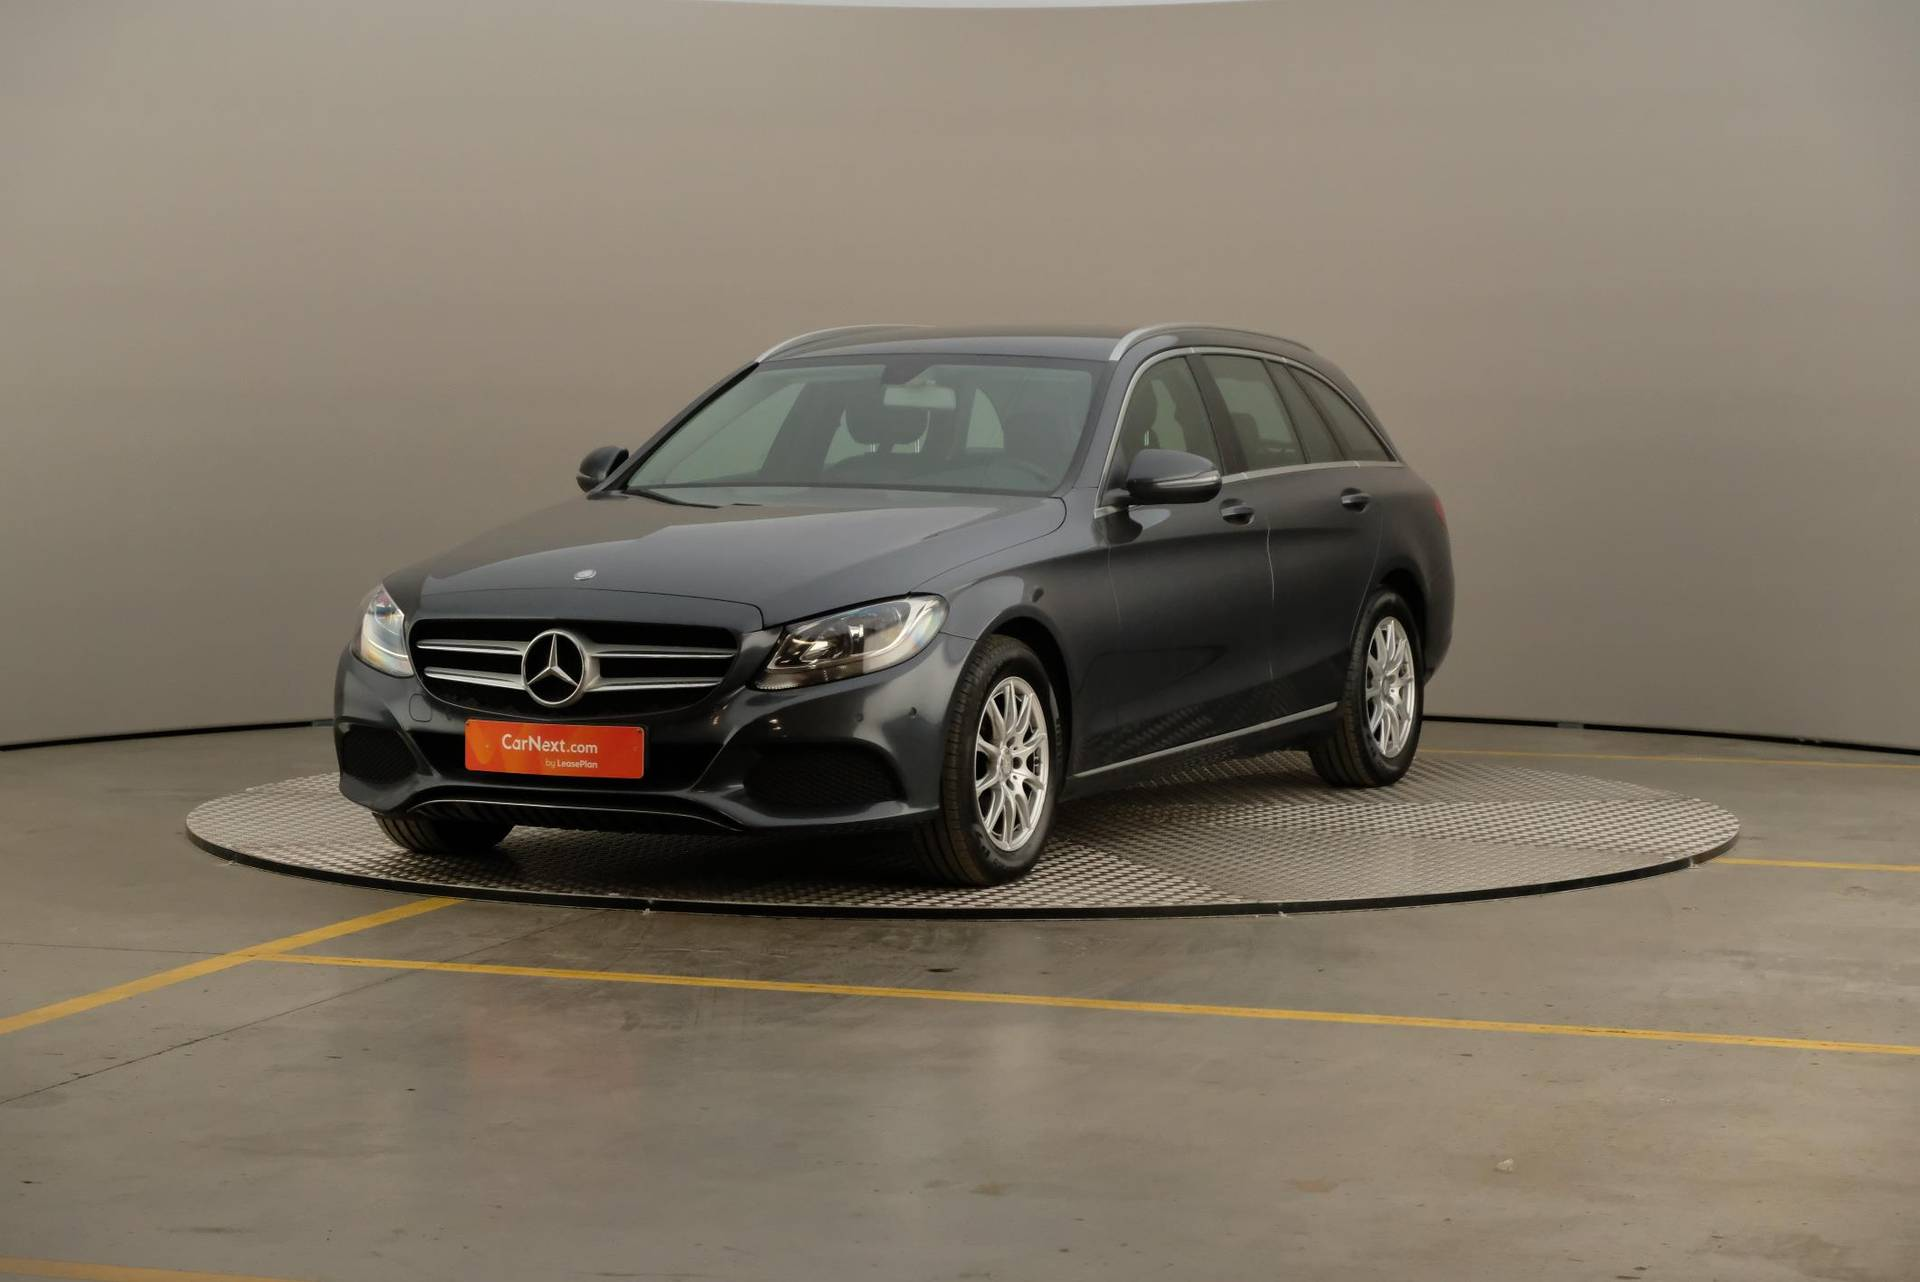 Mercedes-Benz C-Klasse 180 d PACK AVANTGARDE PACK EASY GPS PDC TREKHAAK EURO 6.., 360-image34